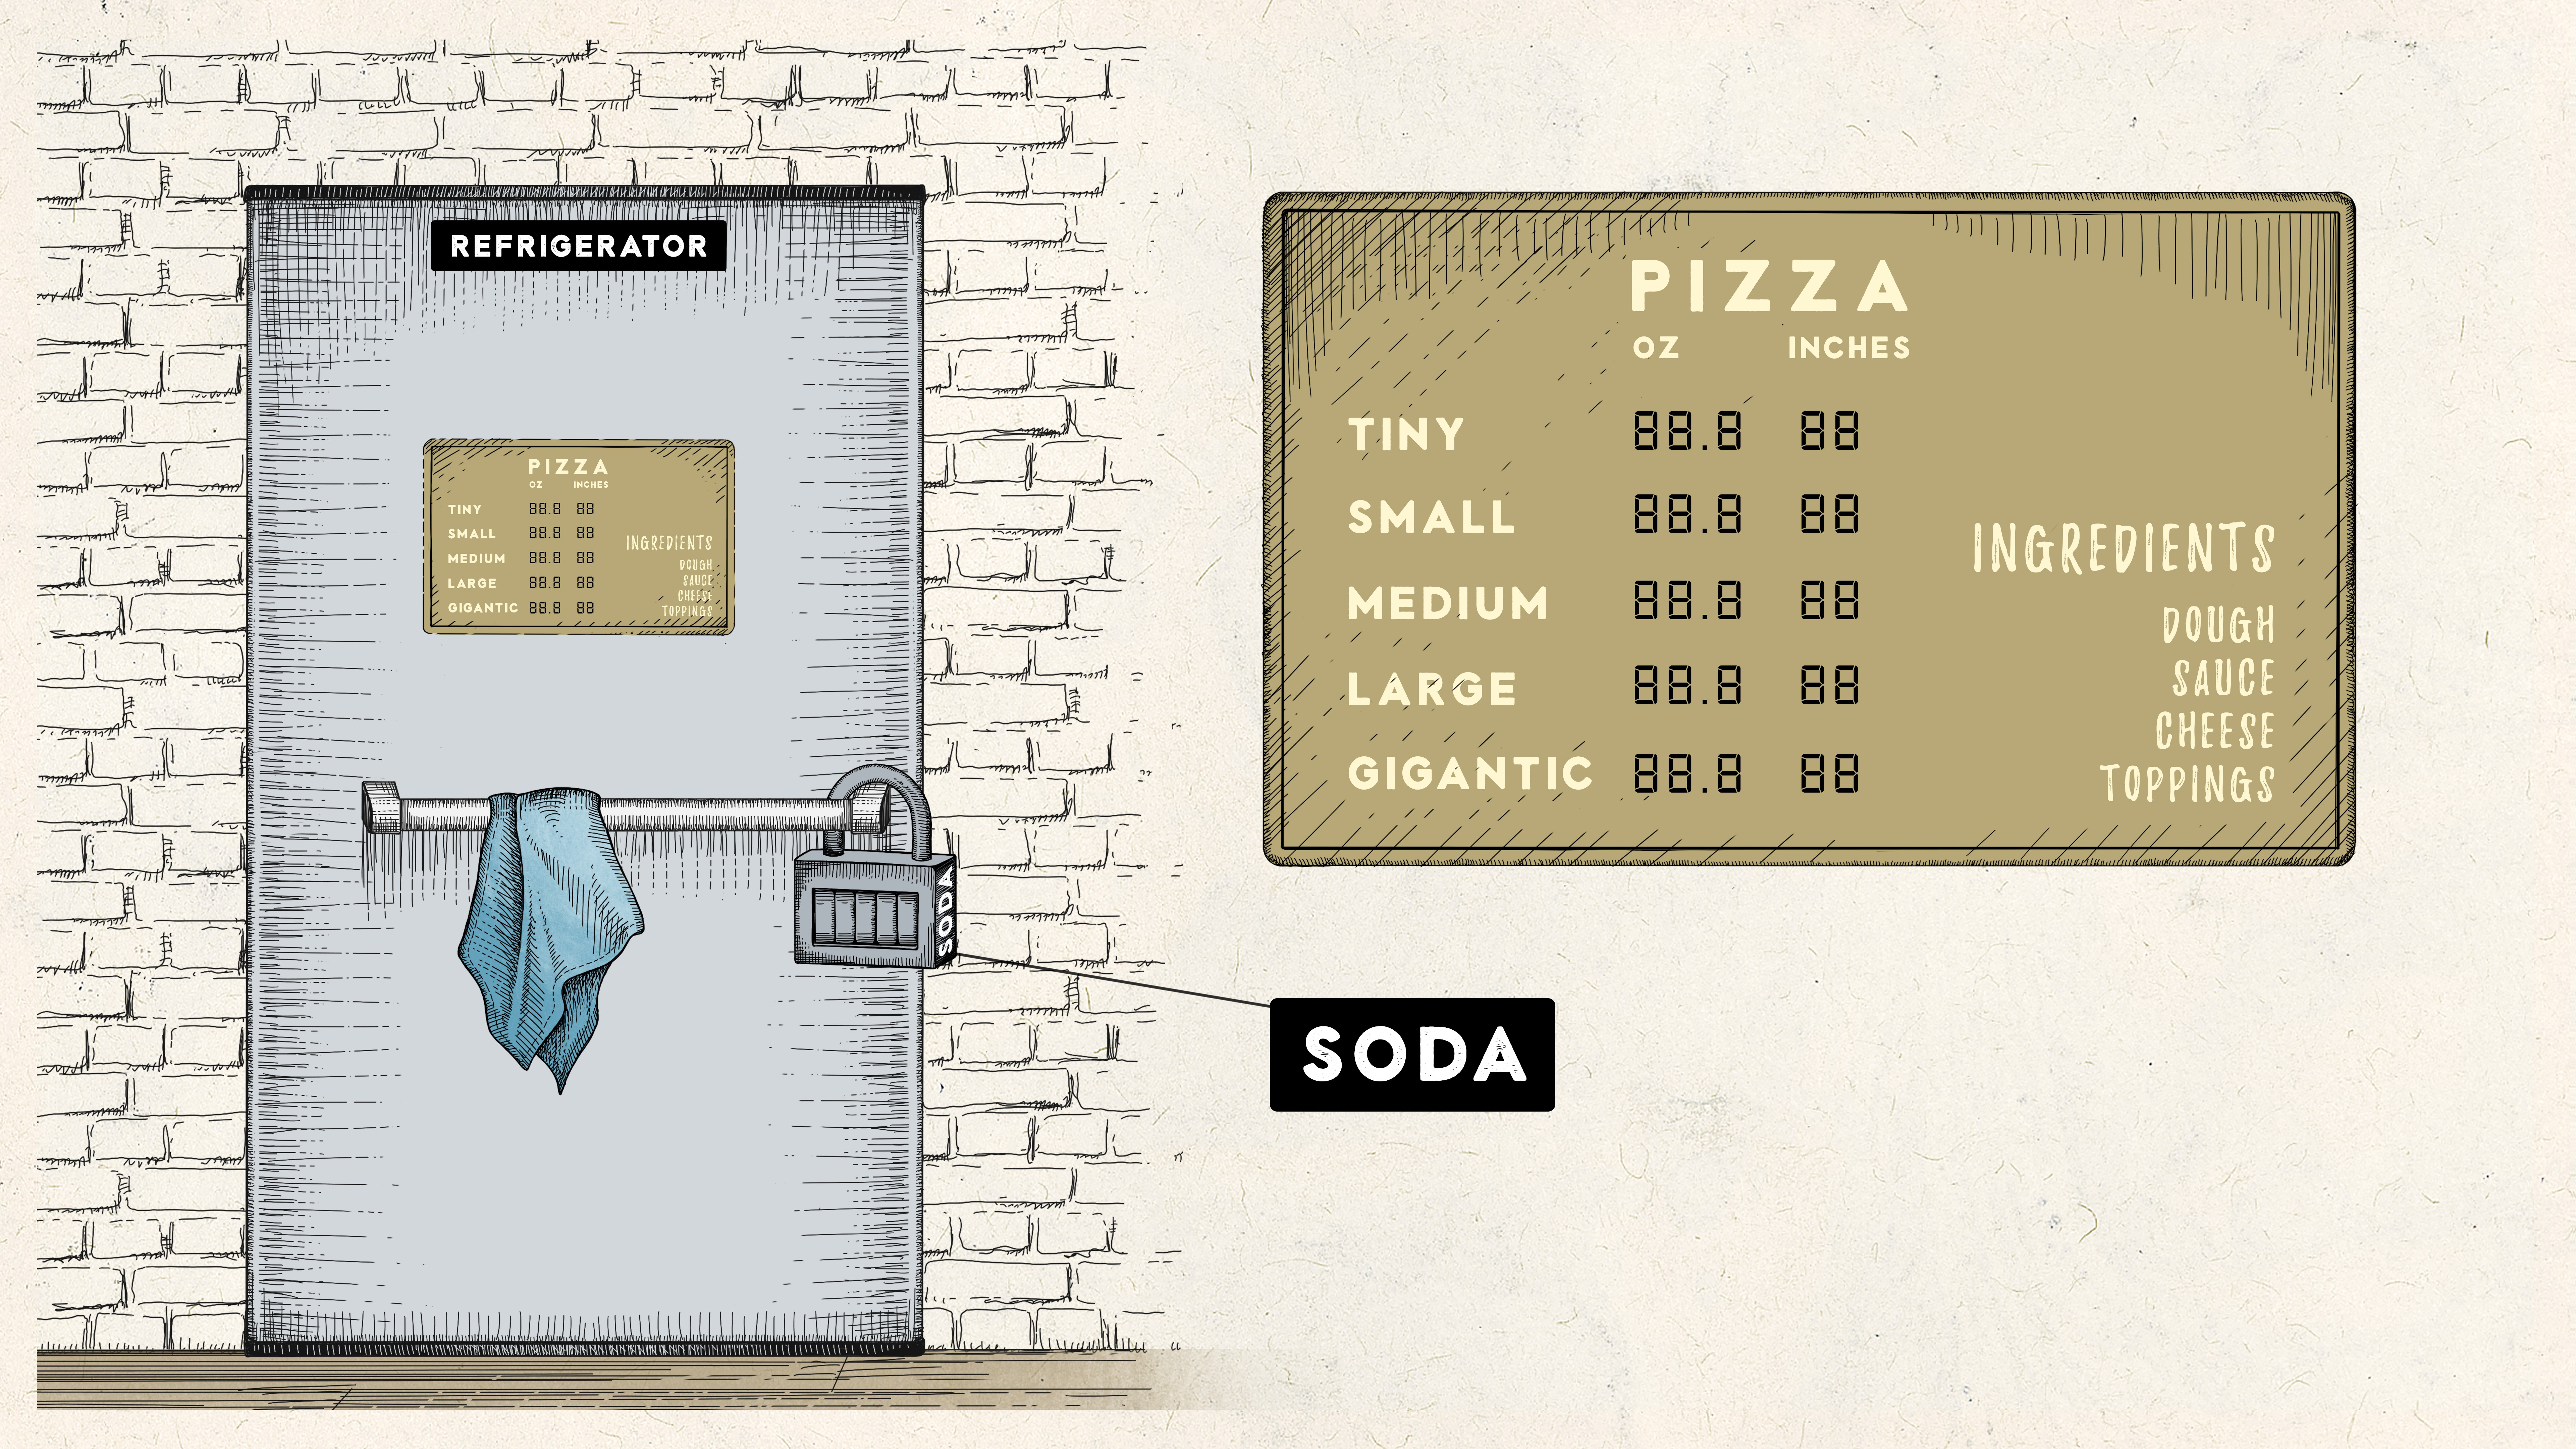 Re-do art for our game Pizza Makes Anything Possible